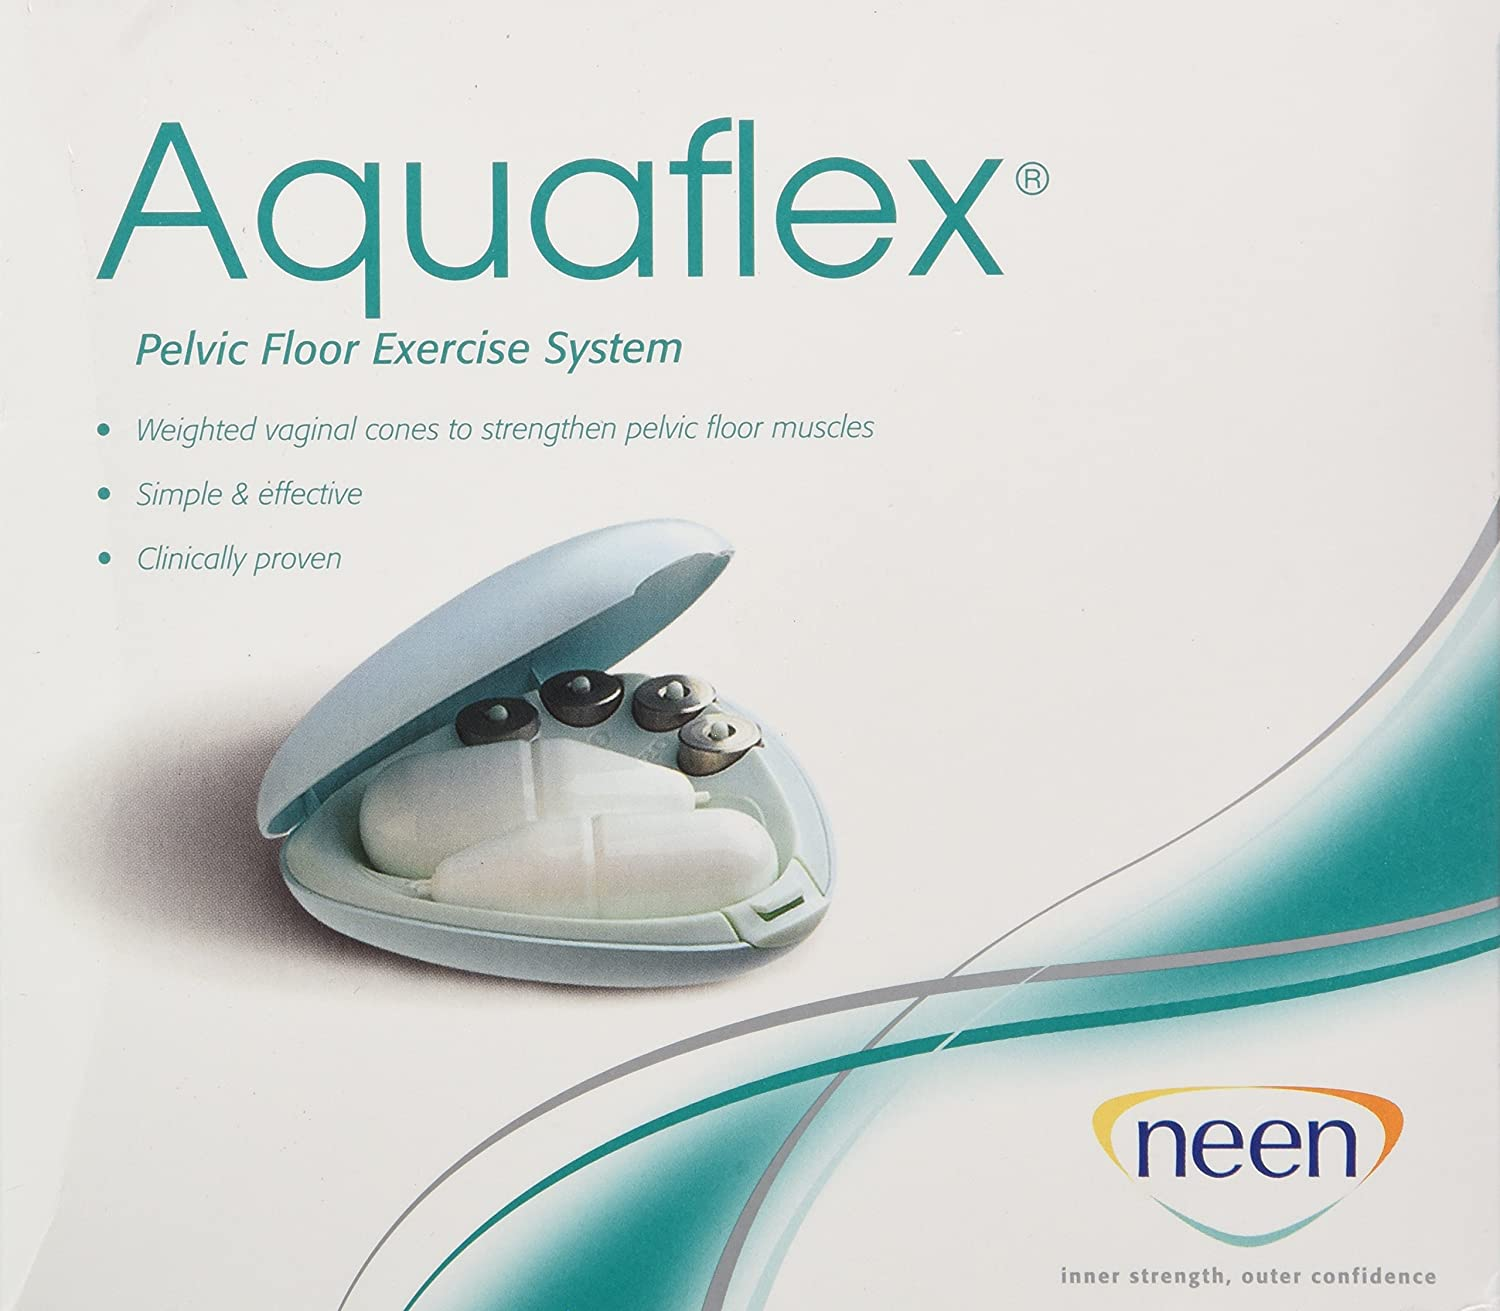 Aquaflex Pelvic Floor Exercise System: Amazon.co.uk: Health U0026 Personal Care